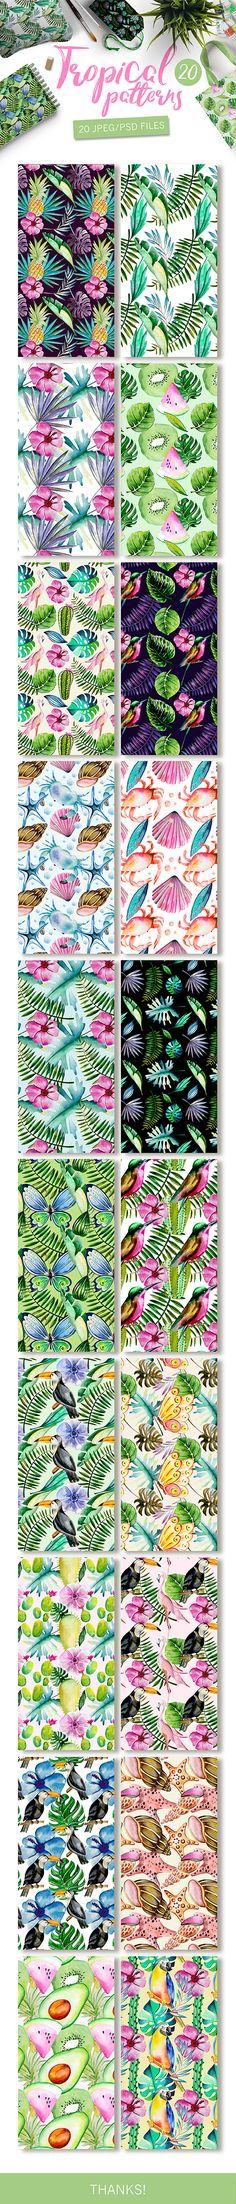 #FLOWER #FLORAL #LEAF #PRINT #ALOHA #HAWAII #DESIGN #WALLPAPER #TROPICAL #GREEN #SPRING #SUMMER #WATERCOLOR #PATTERN #TROPICAL #PATTERN #FLAMINGO #PALM #WEDDING #PLANTS #TEMPLATE #TEXTURE #ANIMAL #FRUIT #PATTERN #FRESH #GRAPHIC #HOLIDAY #TROPICAL #LEAVES #WATERCOLOR #WEDDING  #BACKGROUND #RAINFOREST #JUNGLE  #CLIPART #NATURE #BOTANICAL #ILLUSTRATION #ILLUSTRATION #DRAWING #EXOTIC #LEAVES #HANDDRAWN #ISLAND #INVITATION #TROPICANA #ALOHA #FIESTA #INVITATION #HAWAII #PARTY    #CELEBRATION